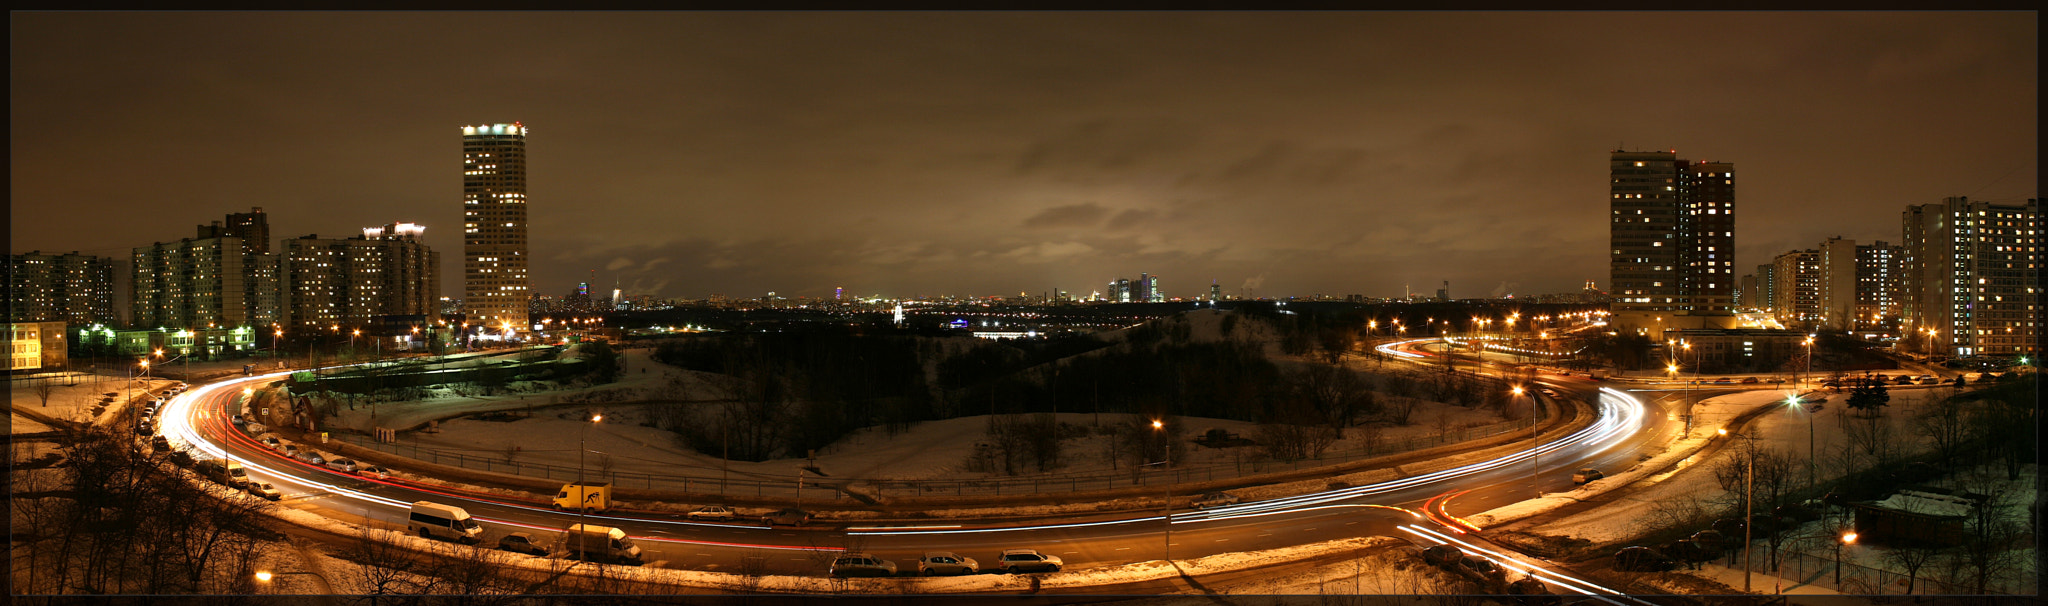 Photograph Panorama of evening Moscow by Milarepa Records on 500px